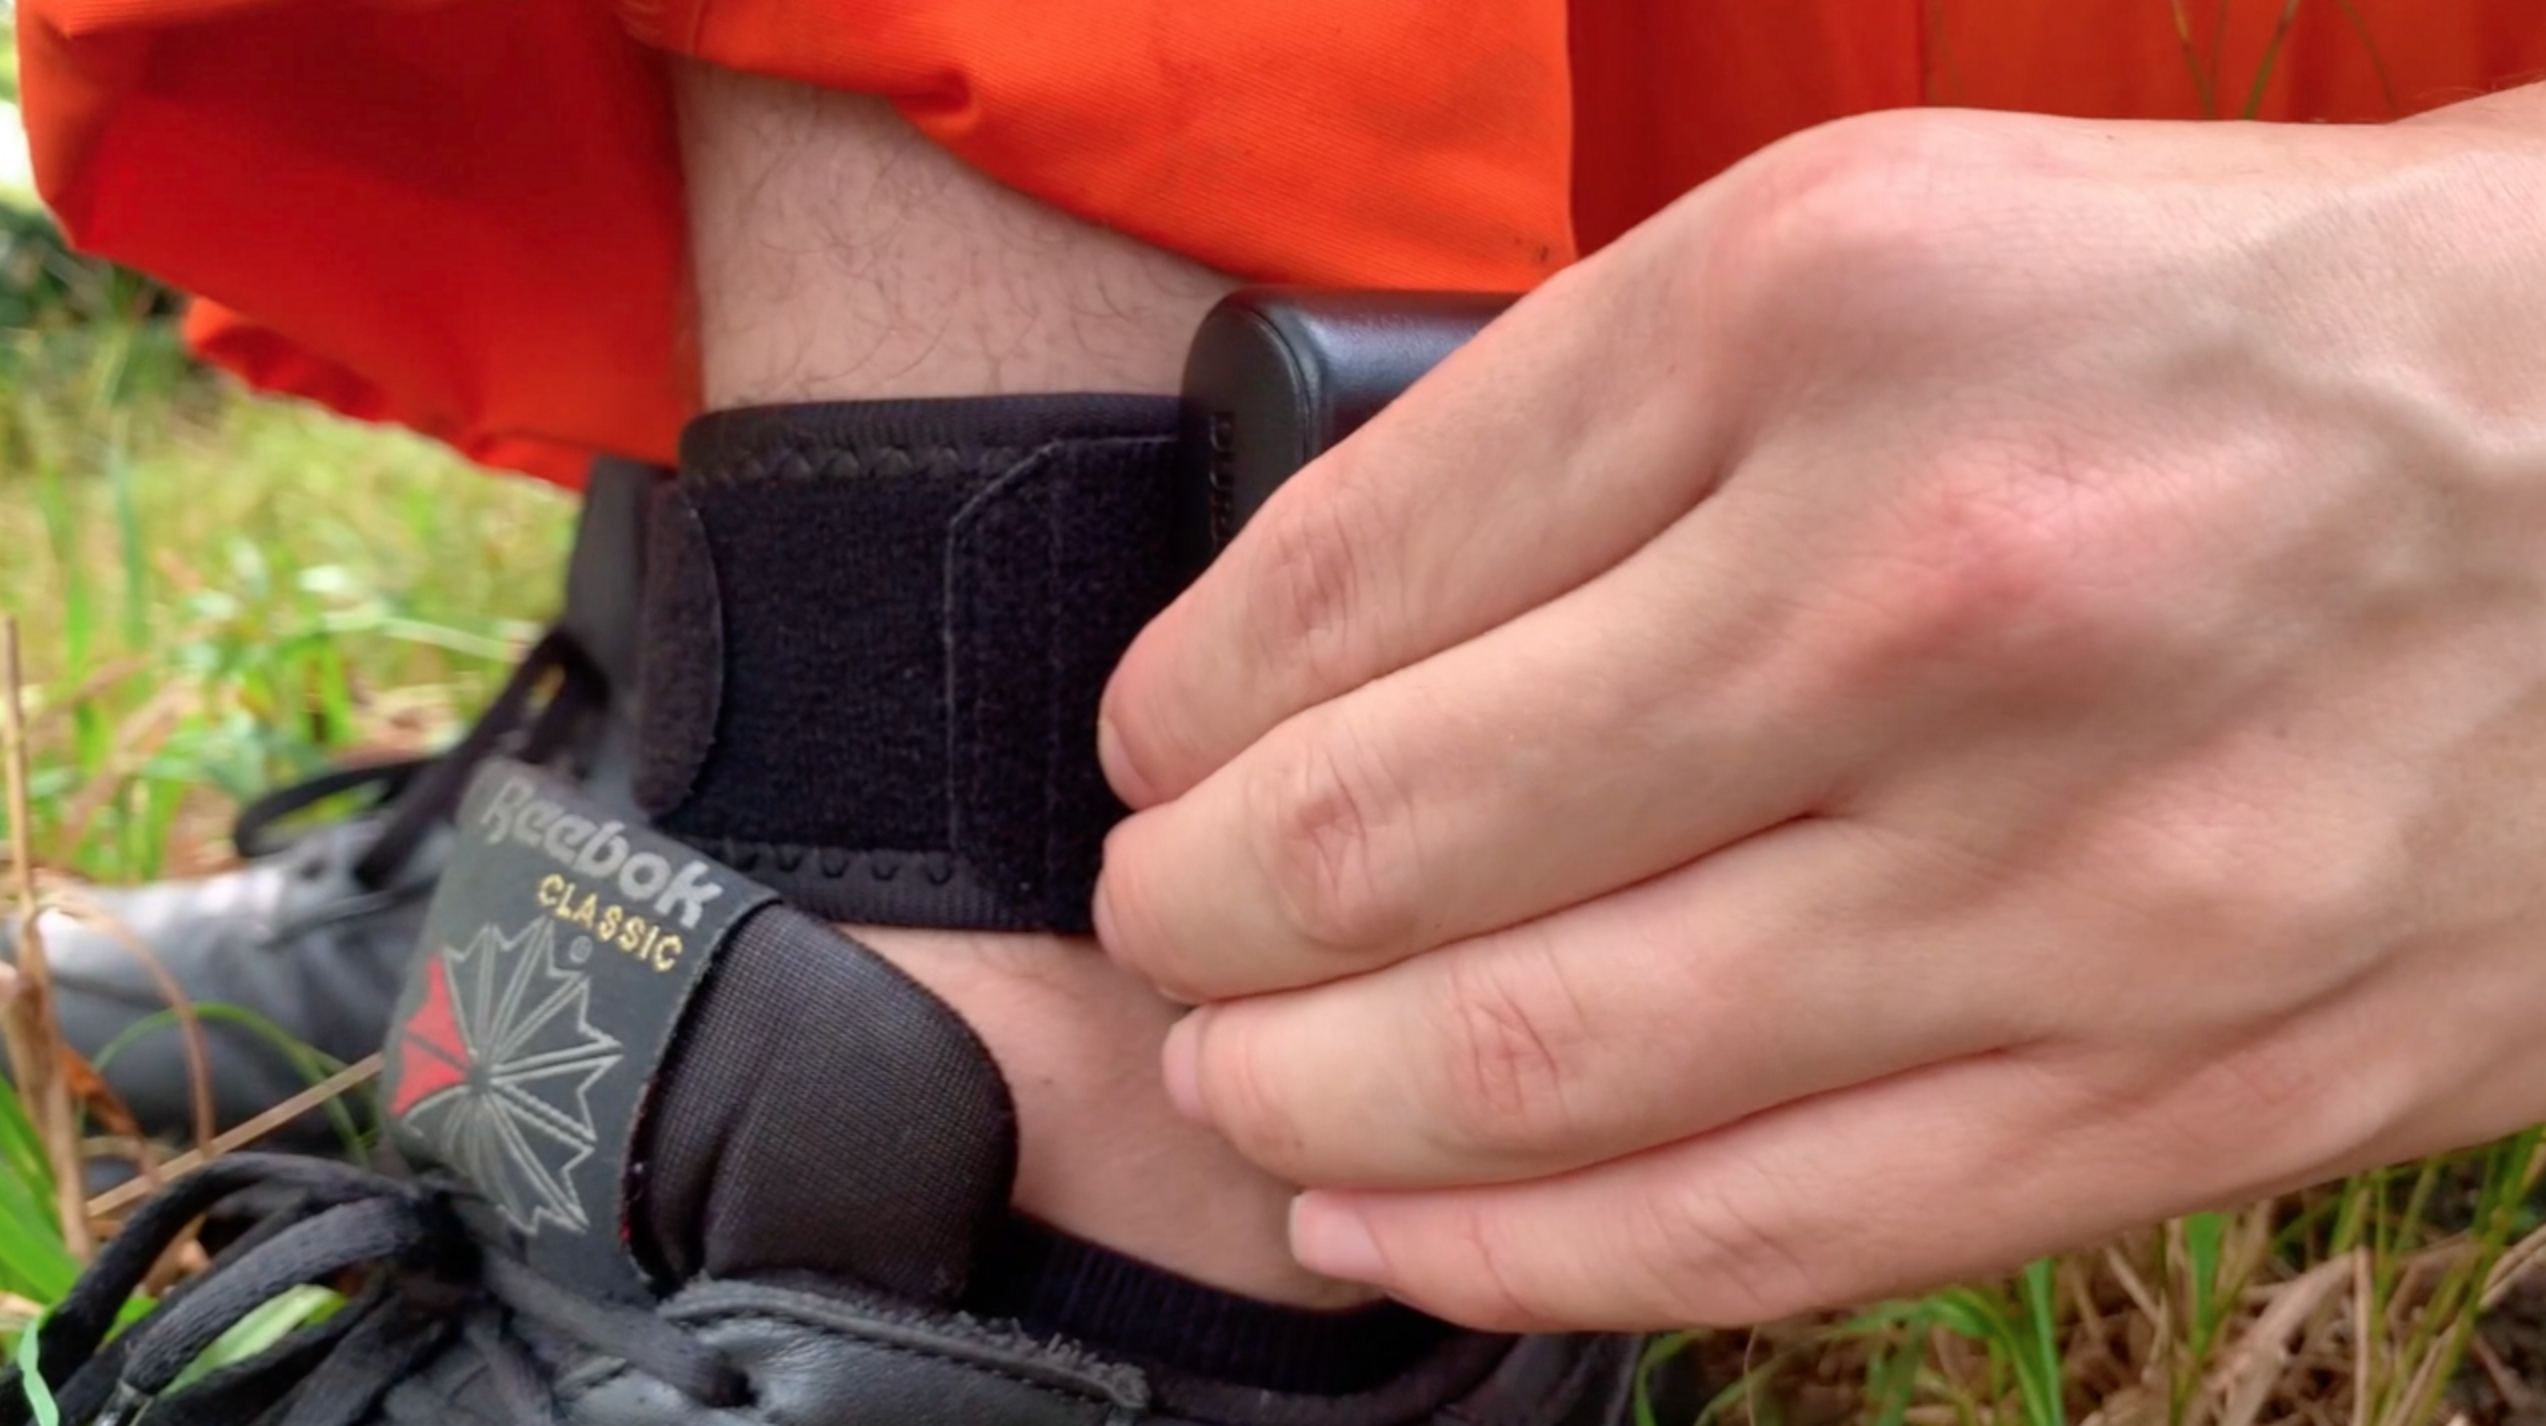 Close up of man in orange jumpsuit pressing a button on his black ankle bracelet